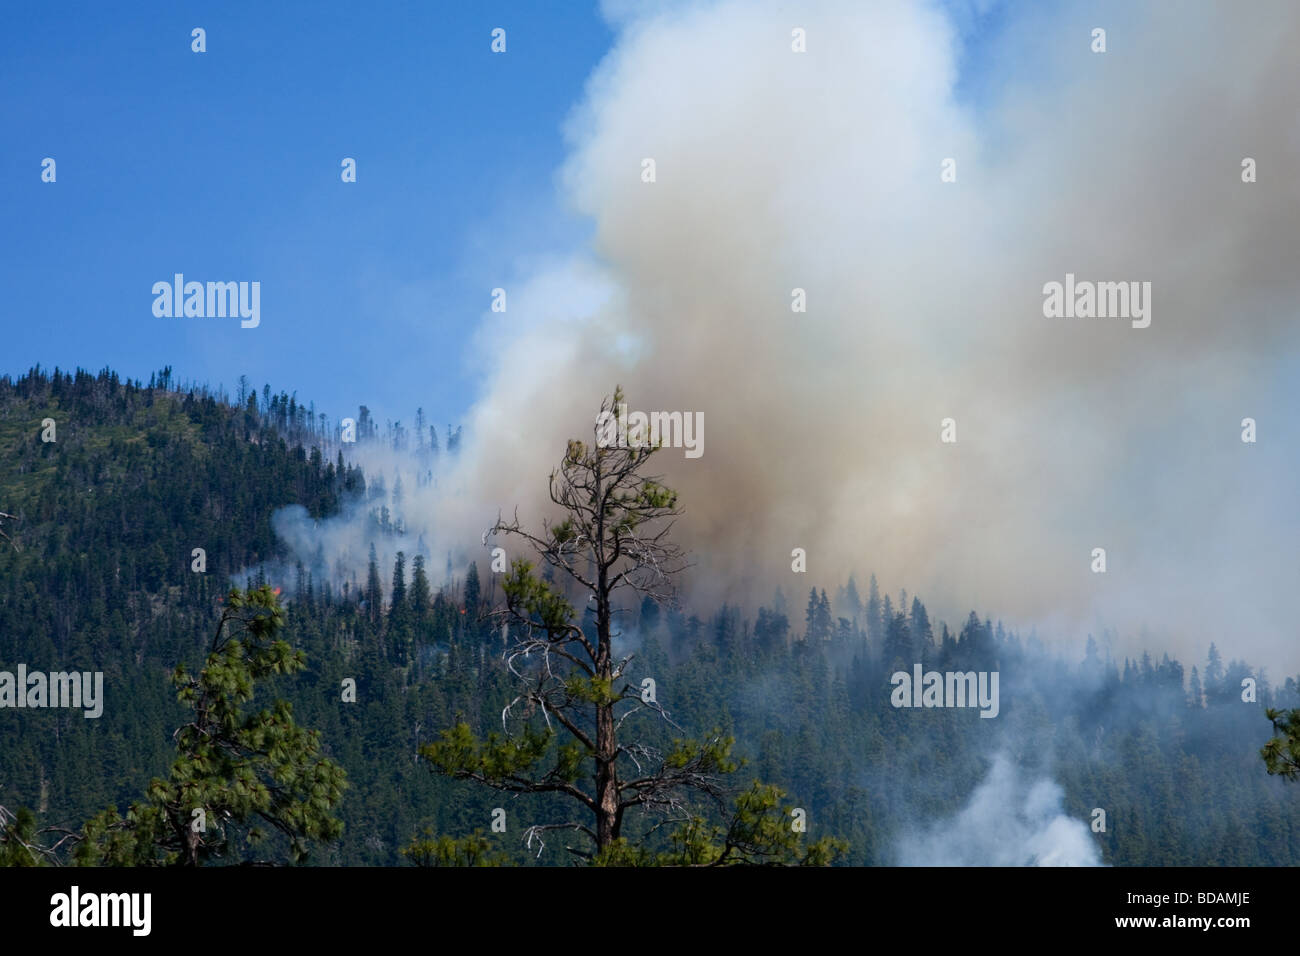 A forest fire in early stages caused by lightning Deschutes National Forest near Sisters Oregon - Stock Image